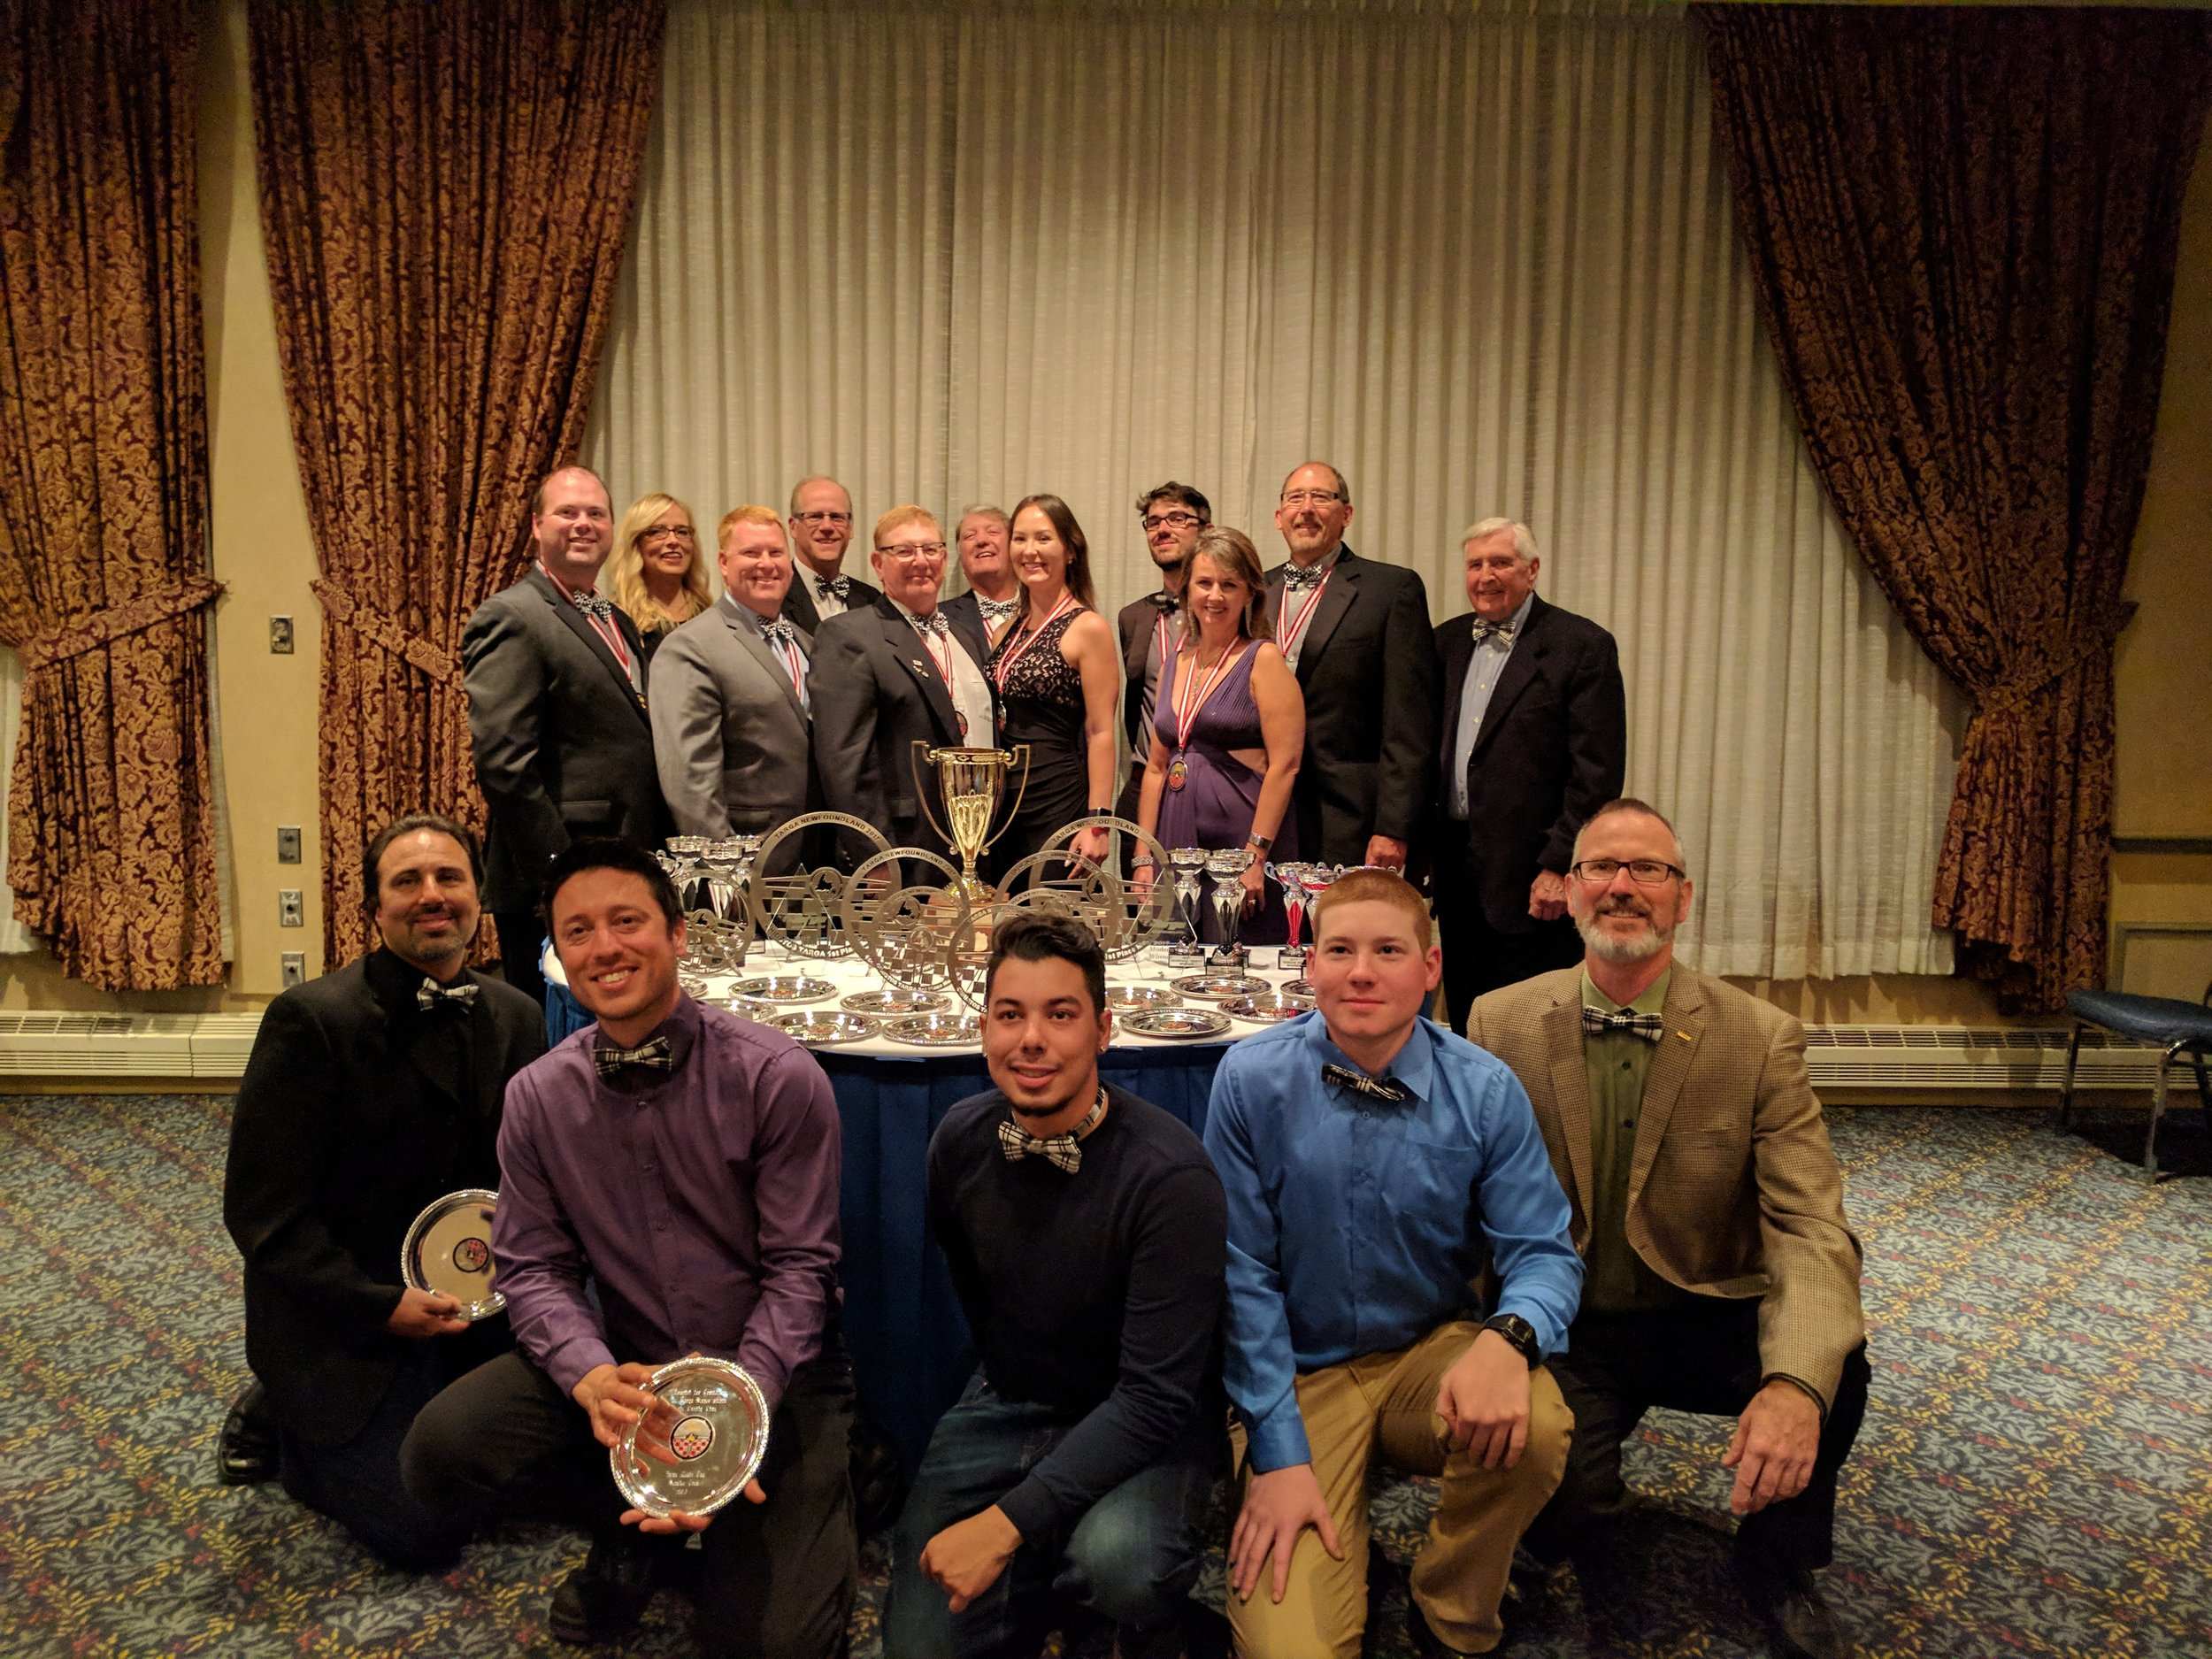 Clockwise from left: Justin Crant, Ruth Thorogood, John Hume Jr., Andrew Thorogood, John Hume Sr., Craig MacMullen, Kristina Kroner, David Jenkins, Briar DeLange, John Riddell, Ron Hume, Alan McClelland (Dean, School of Transportation at Centennial College), (Centennial Students: Matthew Yule, Jordan Rotterman and Christopher Sironi) and Garrett Nalepka (Professor, Coordinator Automotive Programs Centennial College)